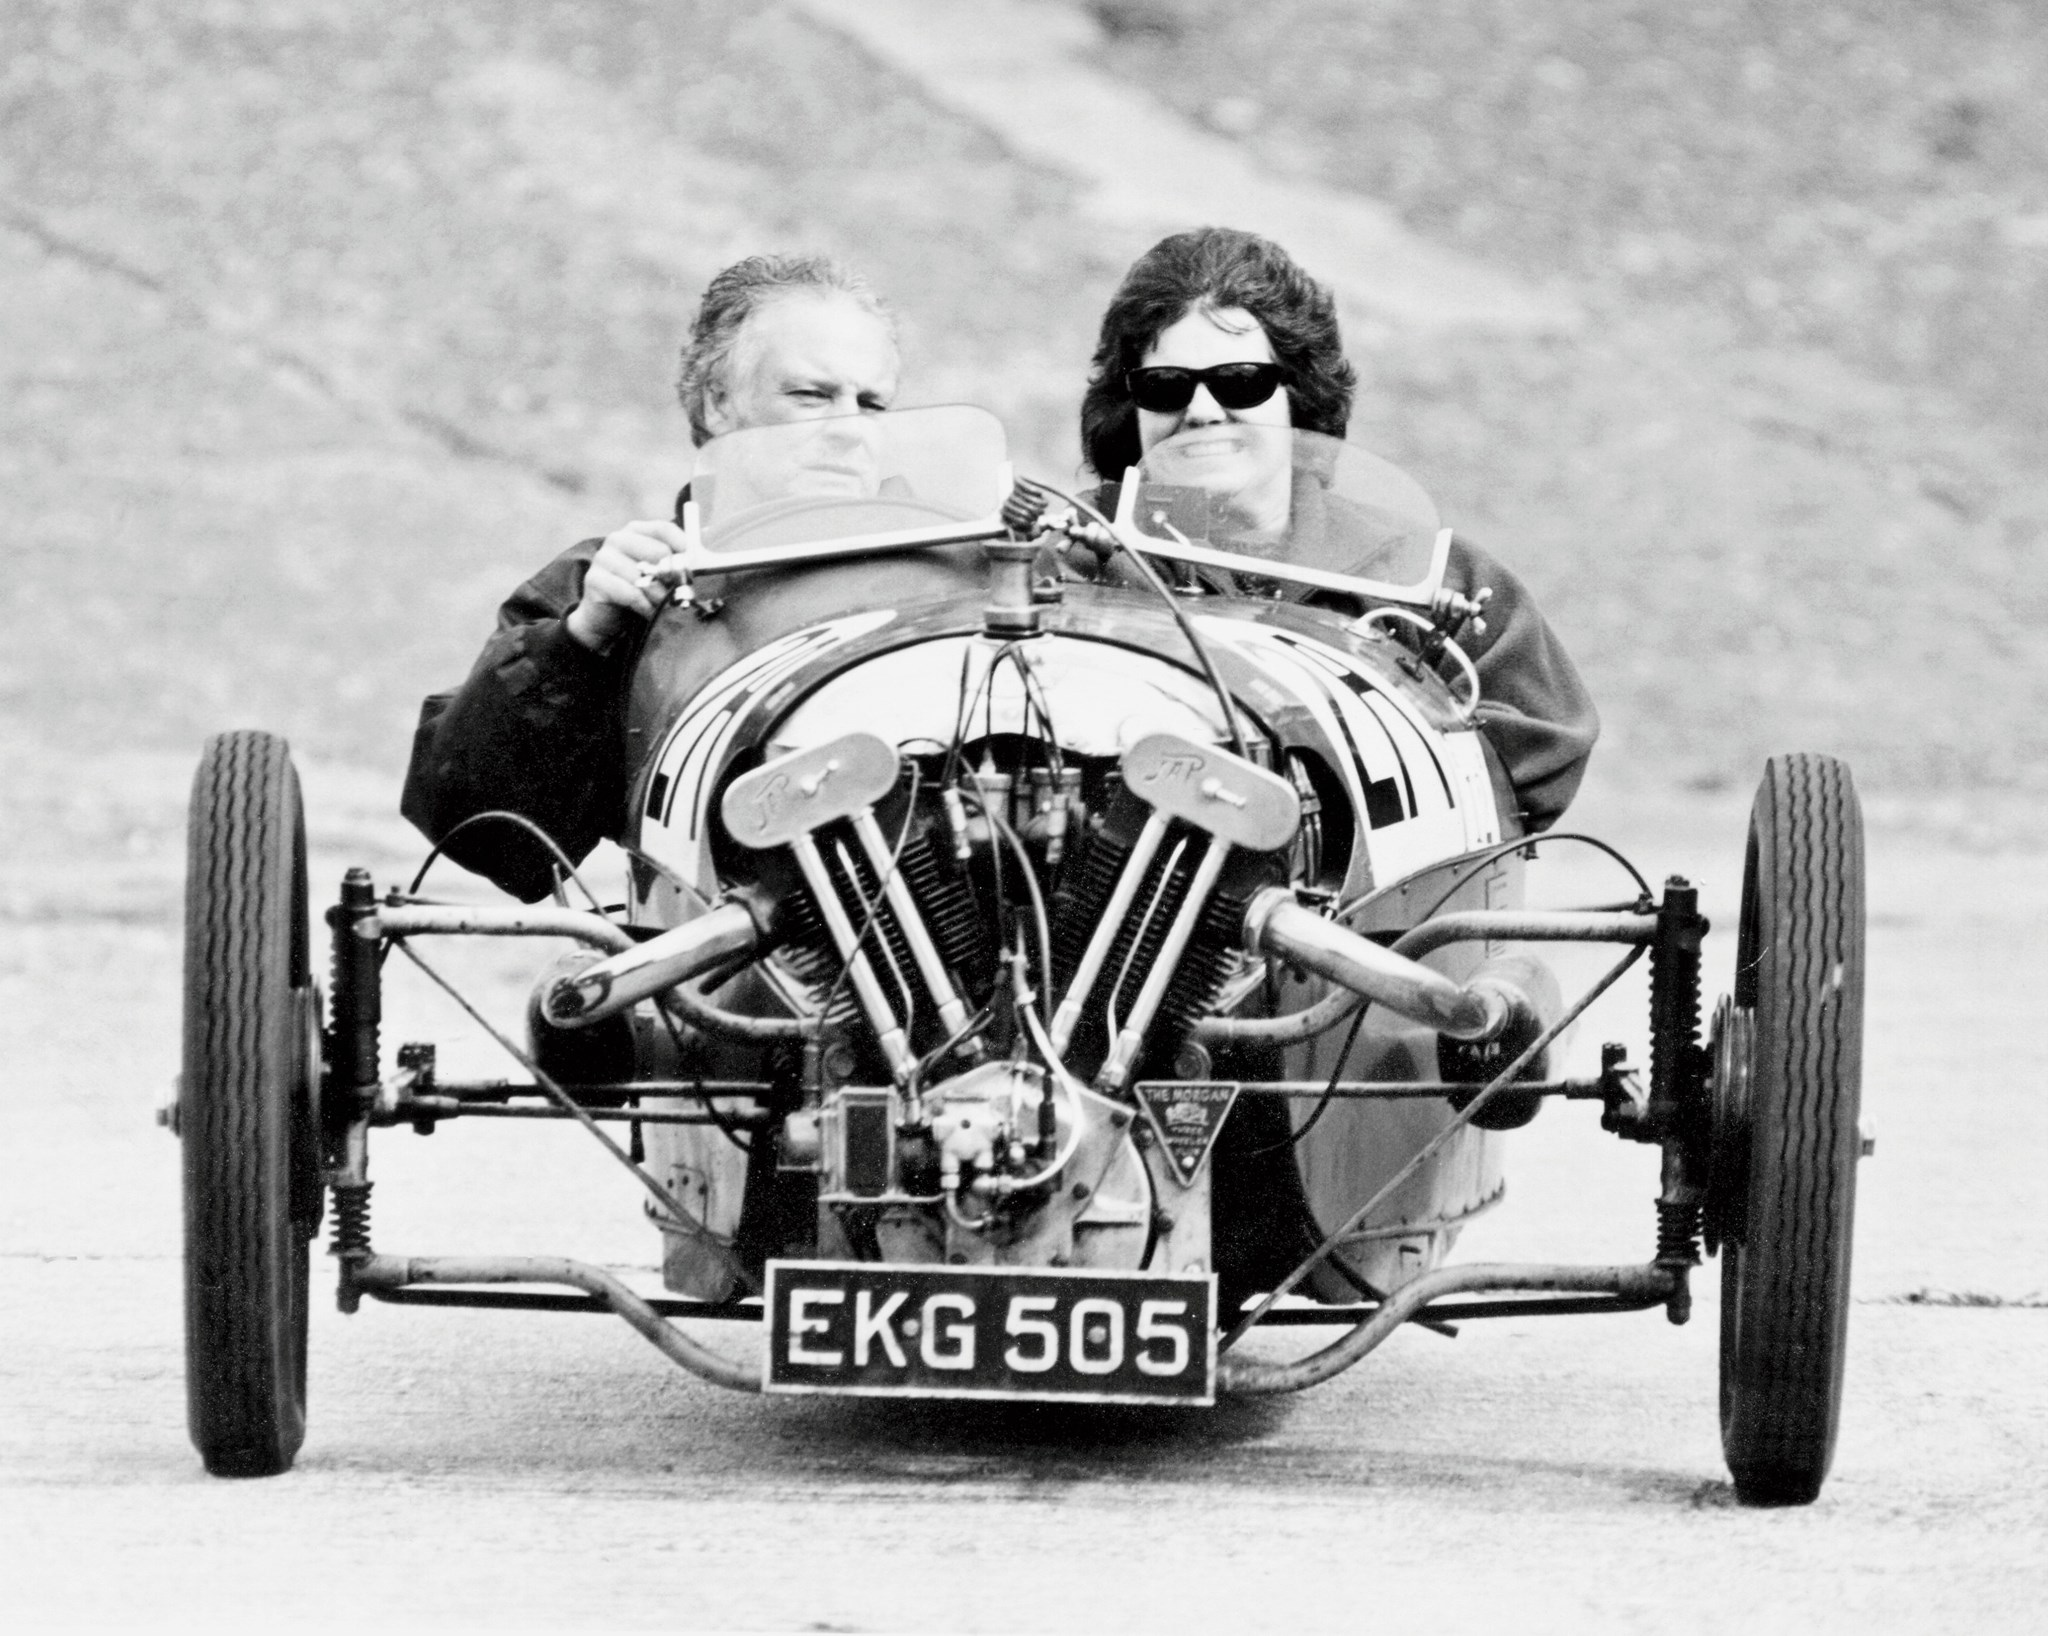 Hillclimbing in a Morgan - no fear!